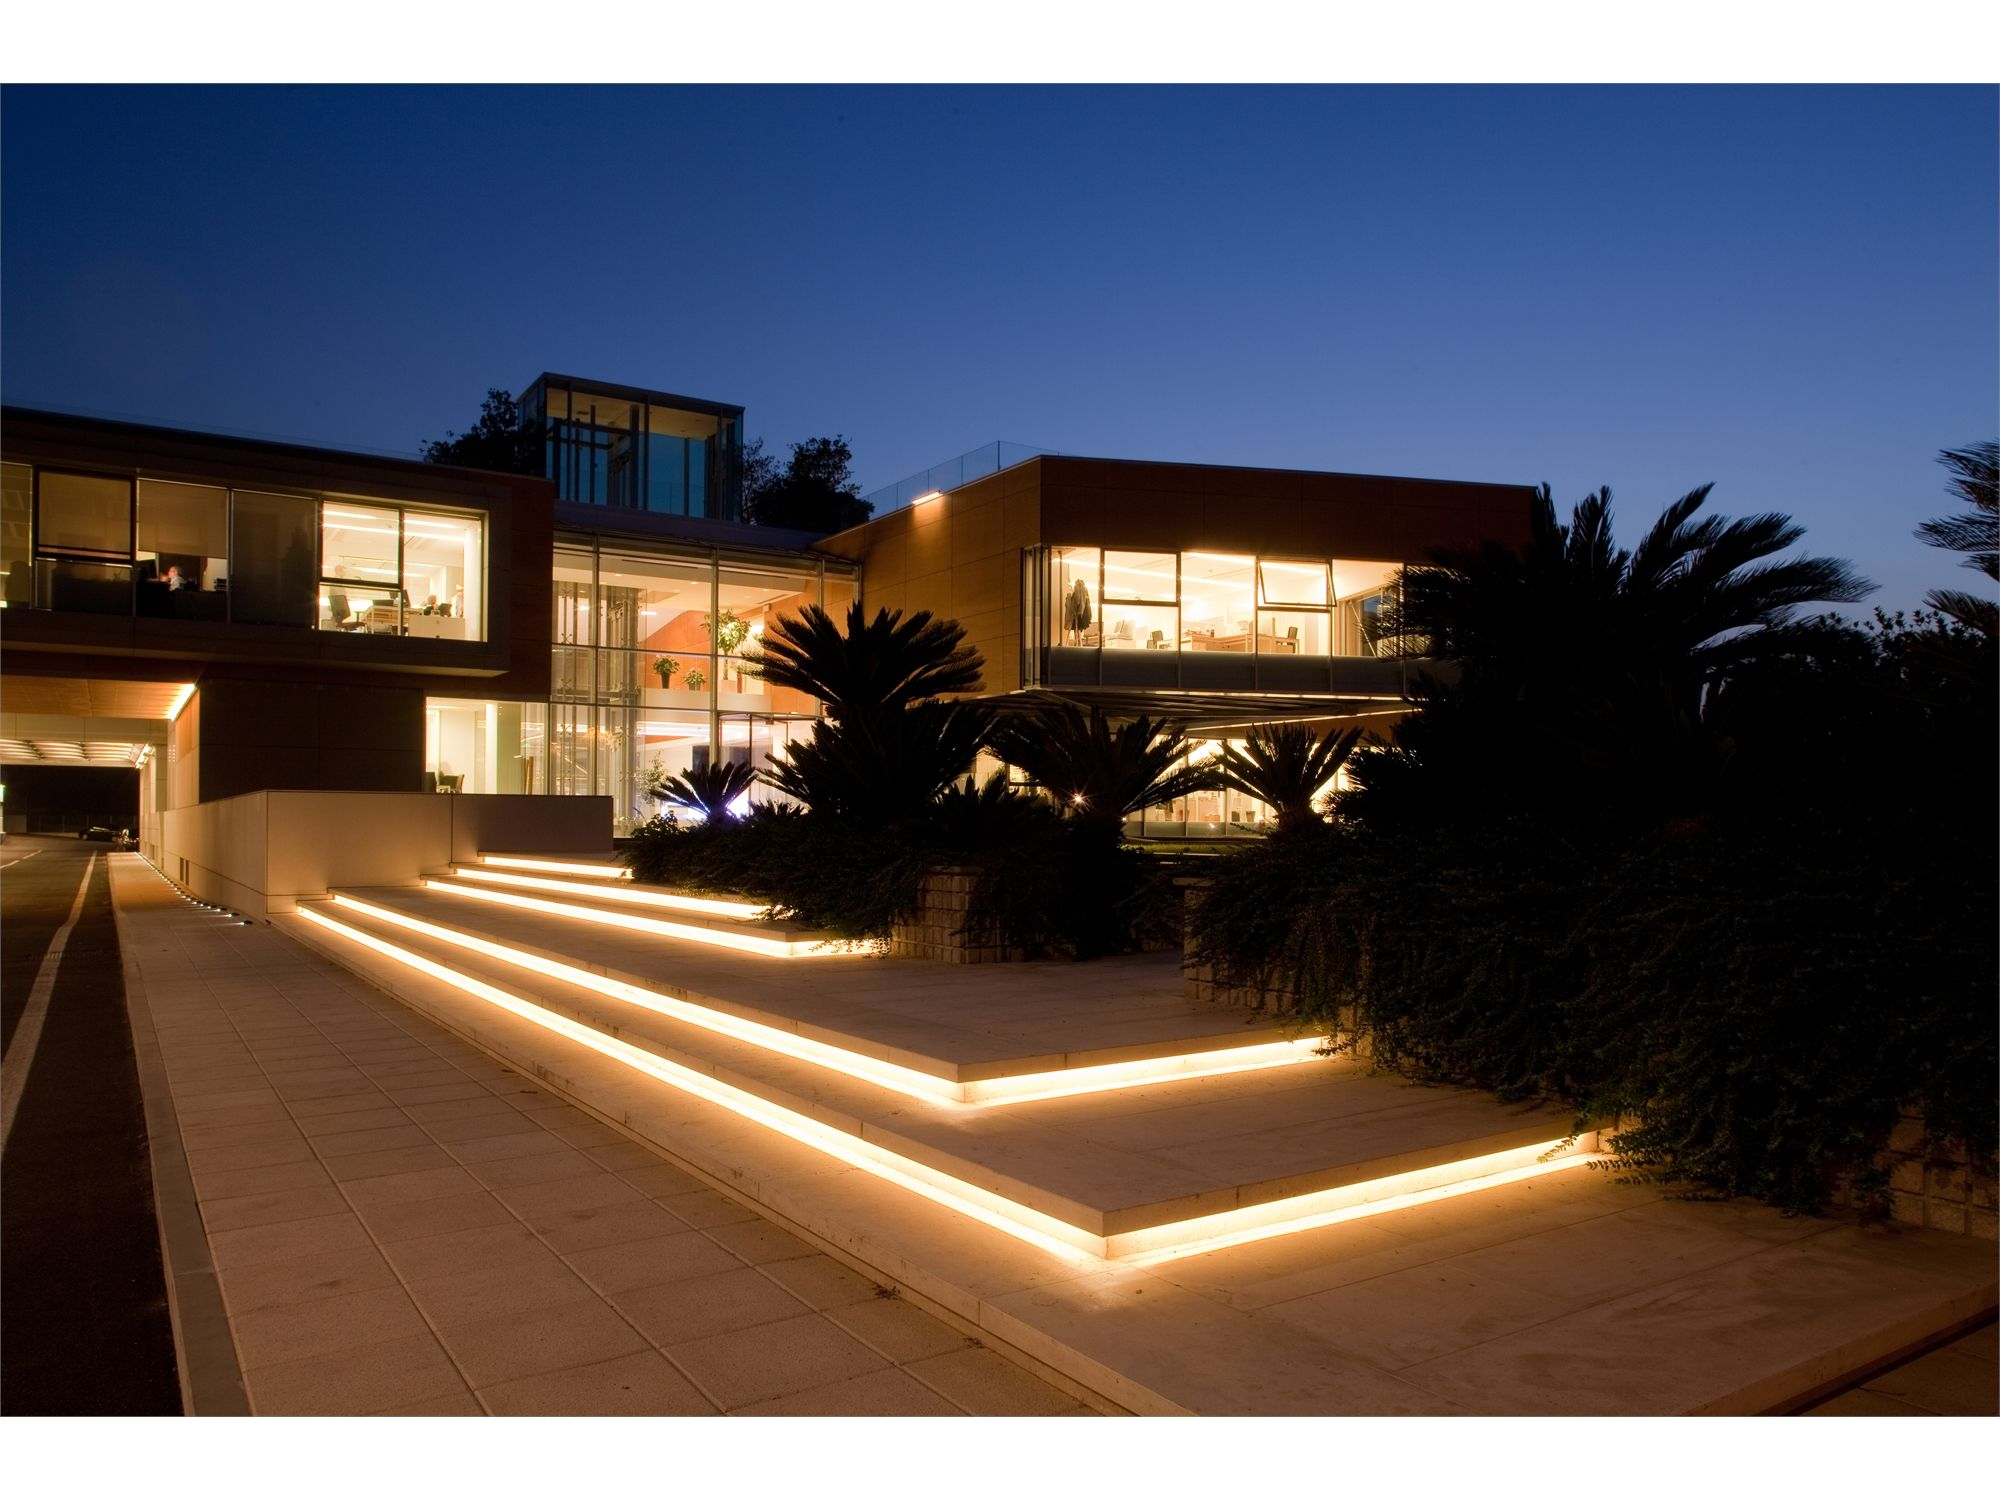 Rainbow new headquarters in Loreto  Italy   Lighting products  iGuzzini  illuminazione   Photographed by220 best LANDSCAPE lighting images on Pinterest   Landscape  . Outside Lighting Design. Home Design Ideas